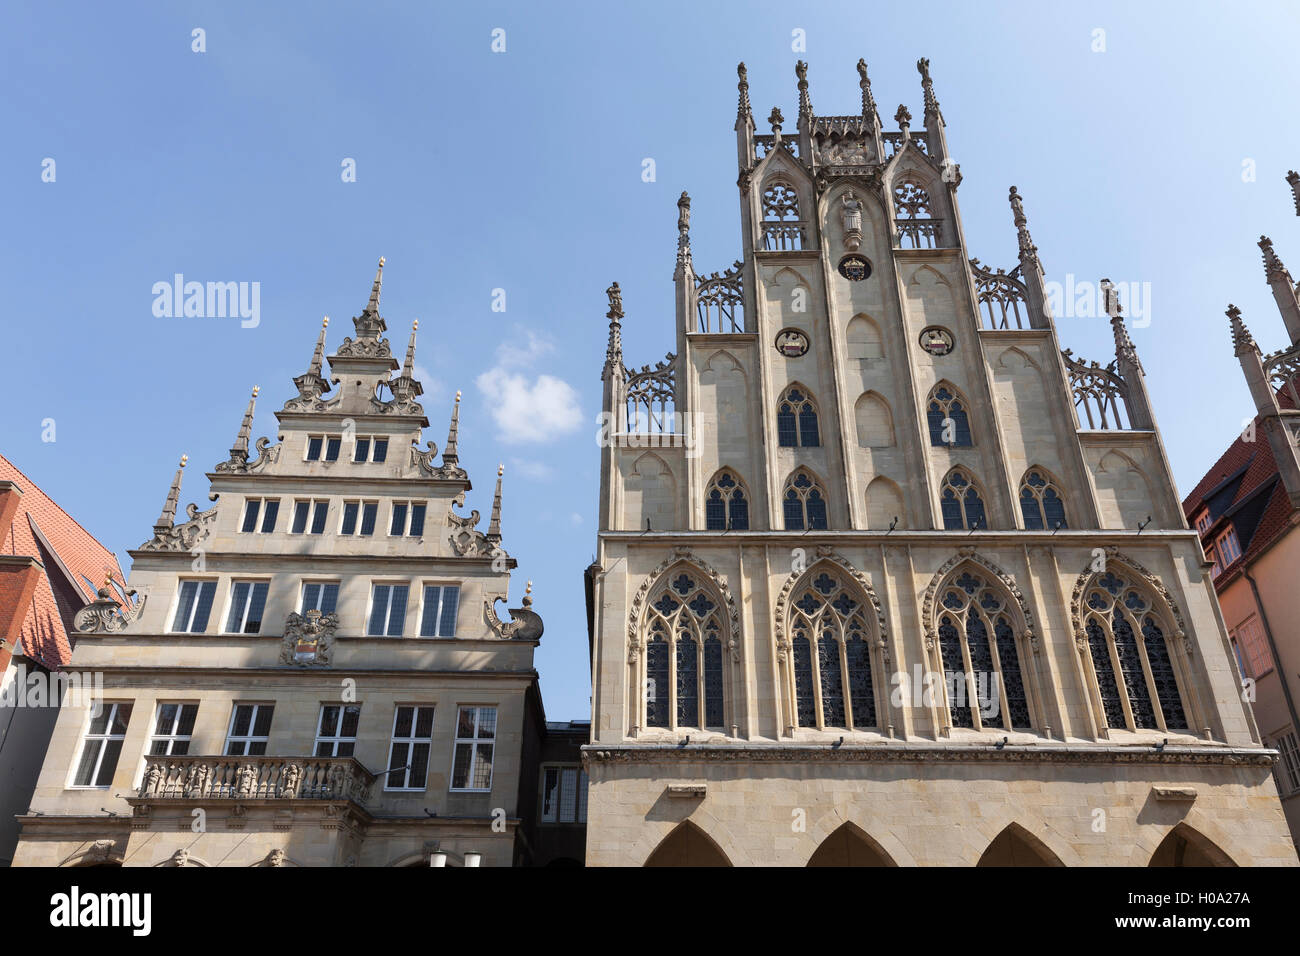 Gable of the city wine house and townhall at Prinzipalmarkt, Münster, Münsterland, North Rhine-Westphalia, - Stock Image